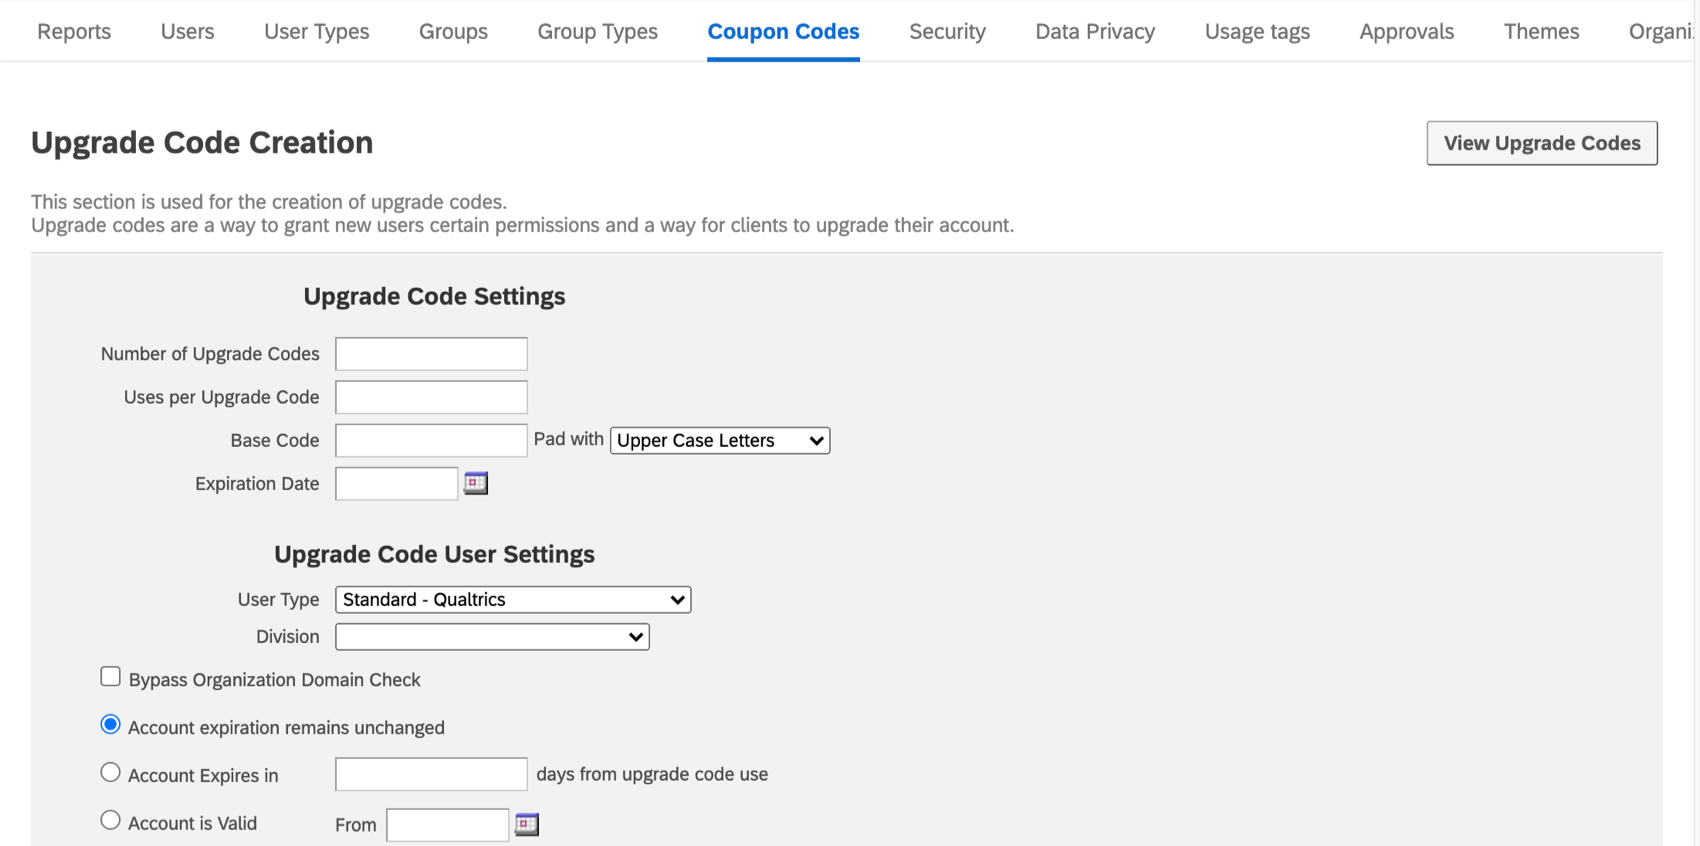 View upgrade codes in gray in upper-right